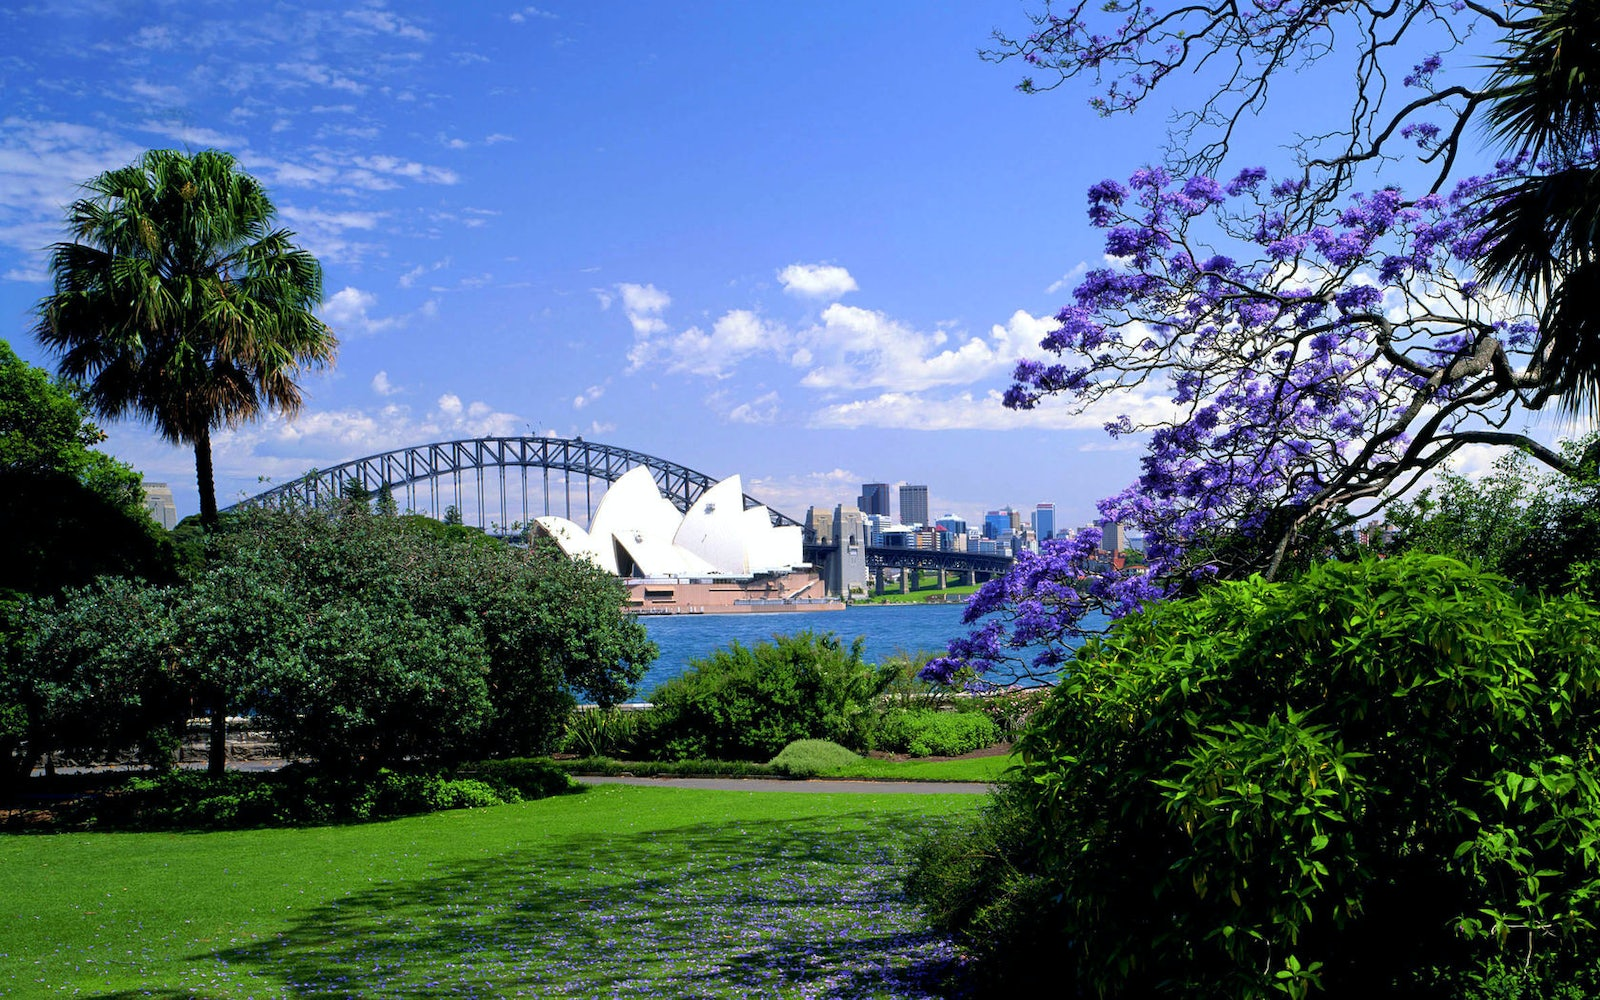 A picture of the Royal Botanic Gardens Sydney